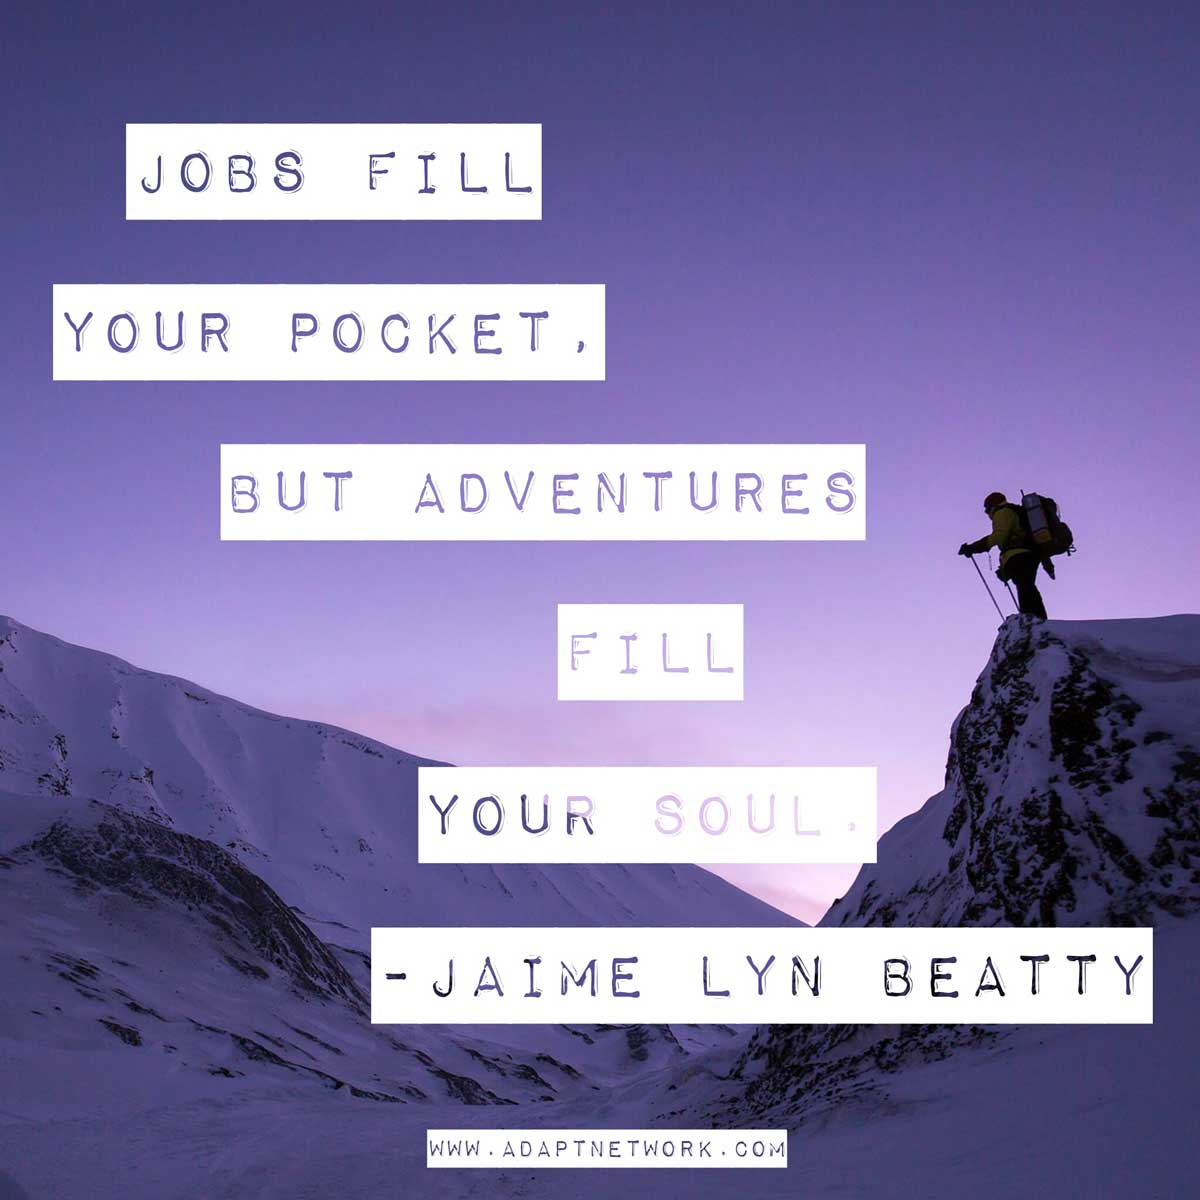 Jobs Fill Your Pocket But Adventures Fill Your Soul Inspirational Quotes